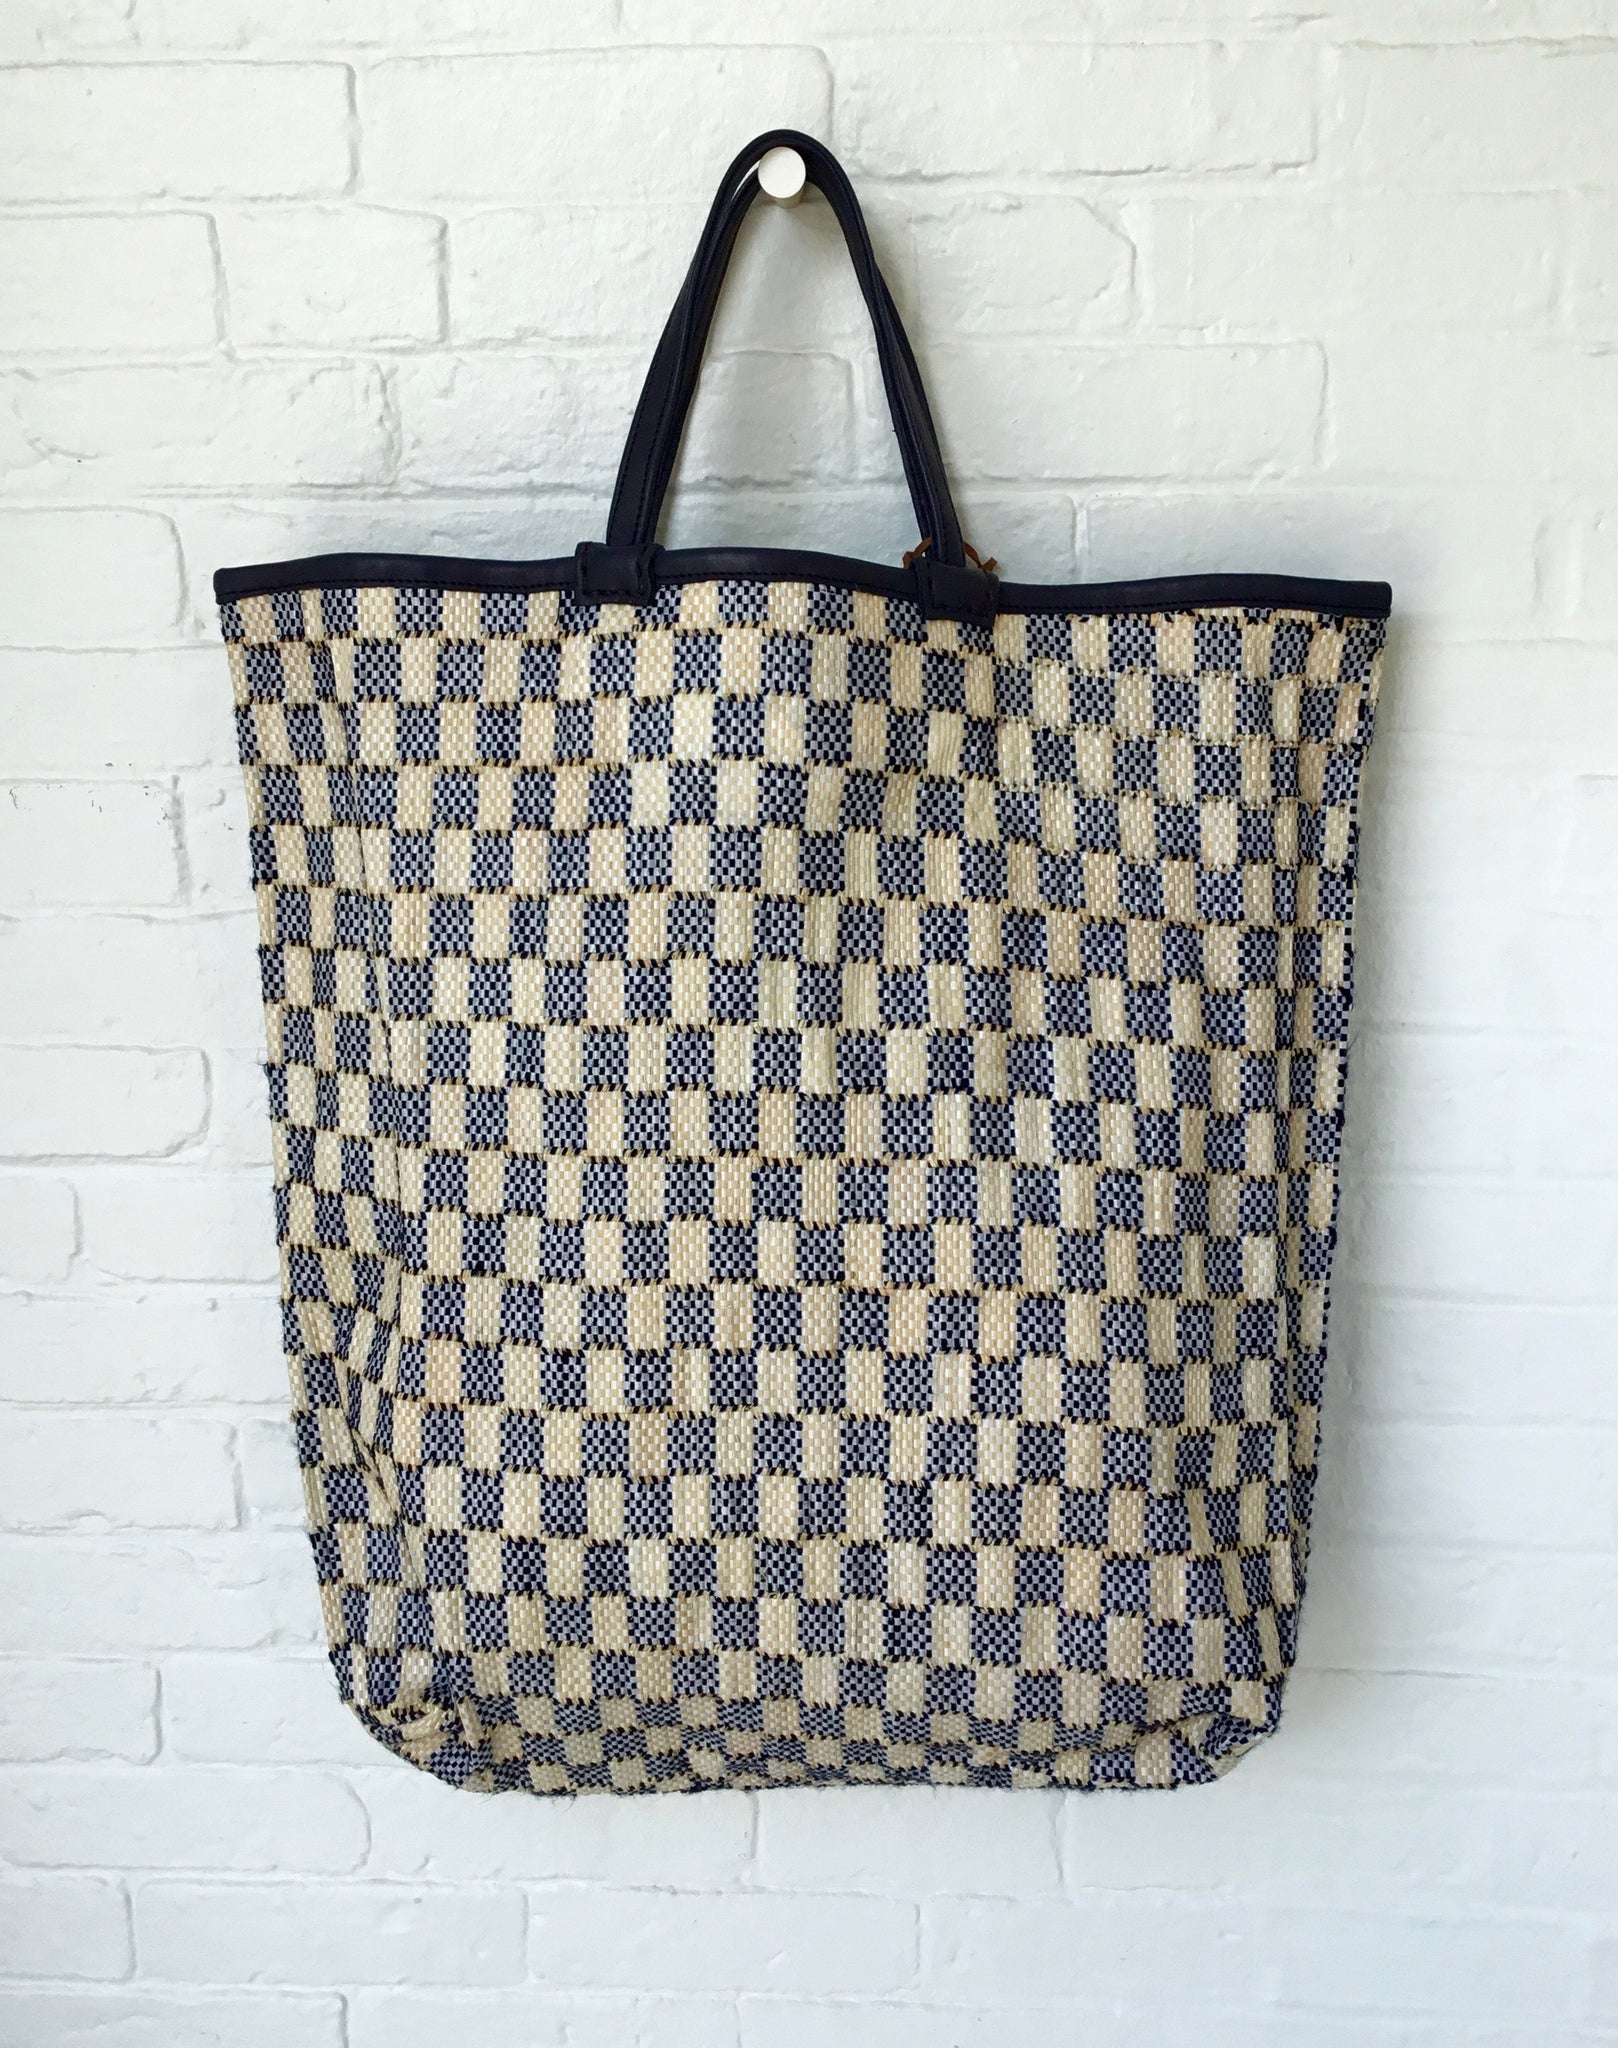 En Shalla Large Tote Bag with Black and Cream Checks